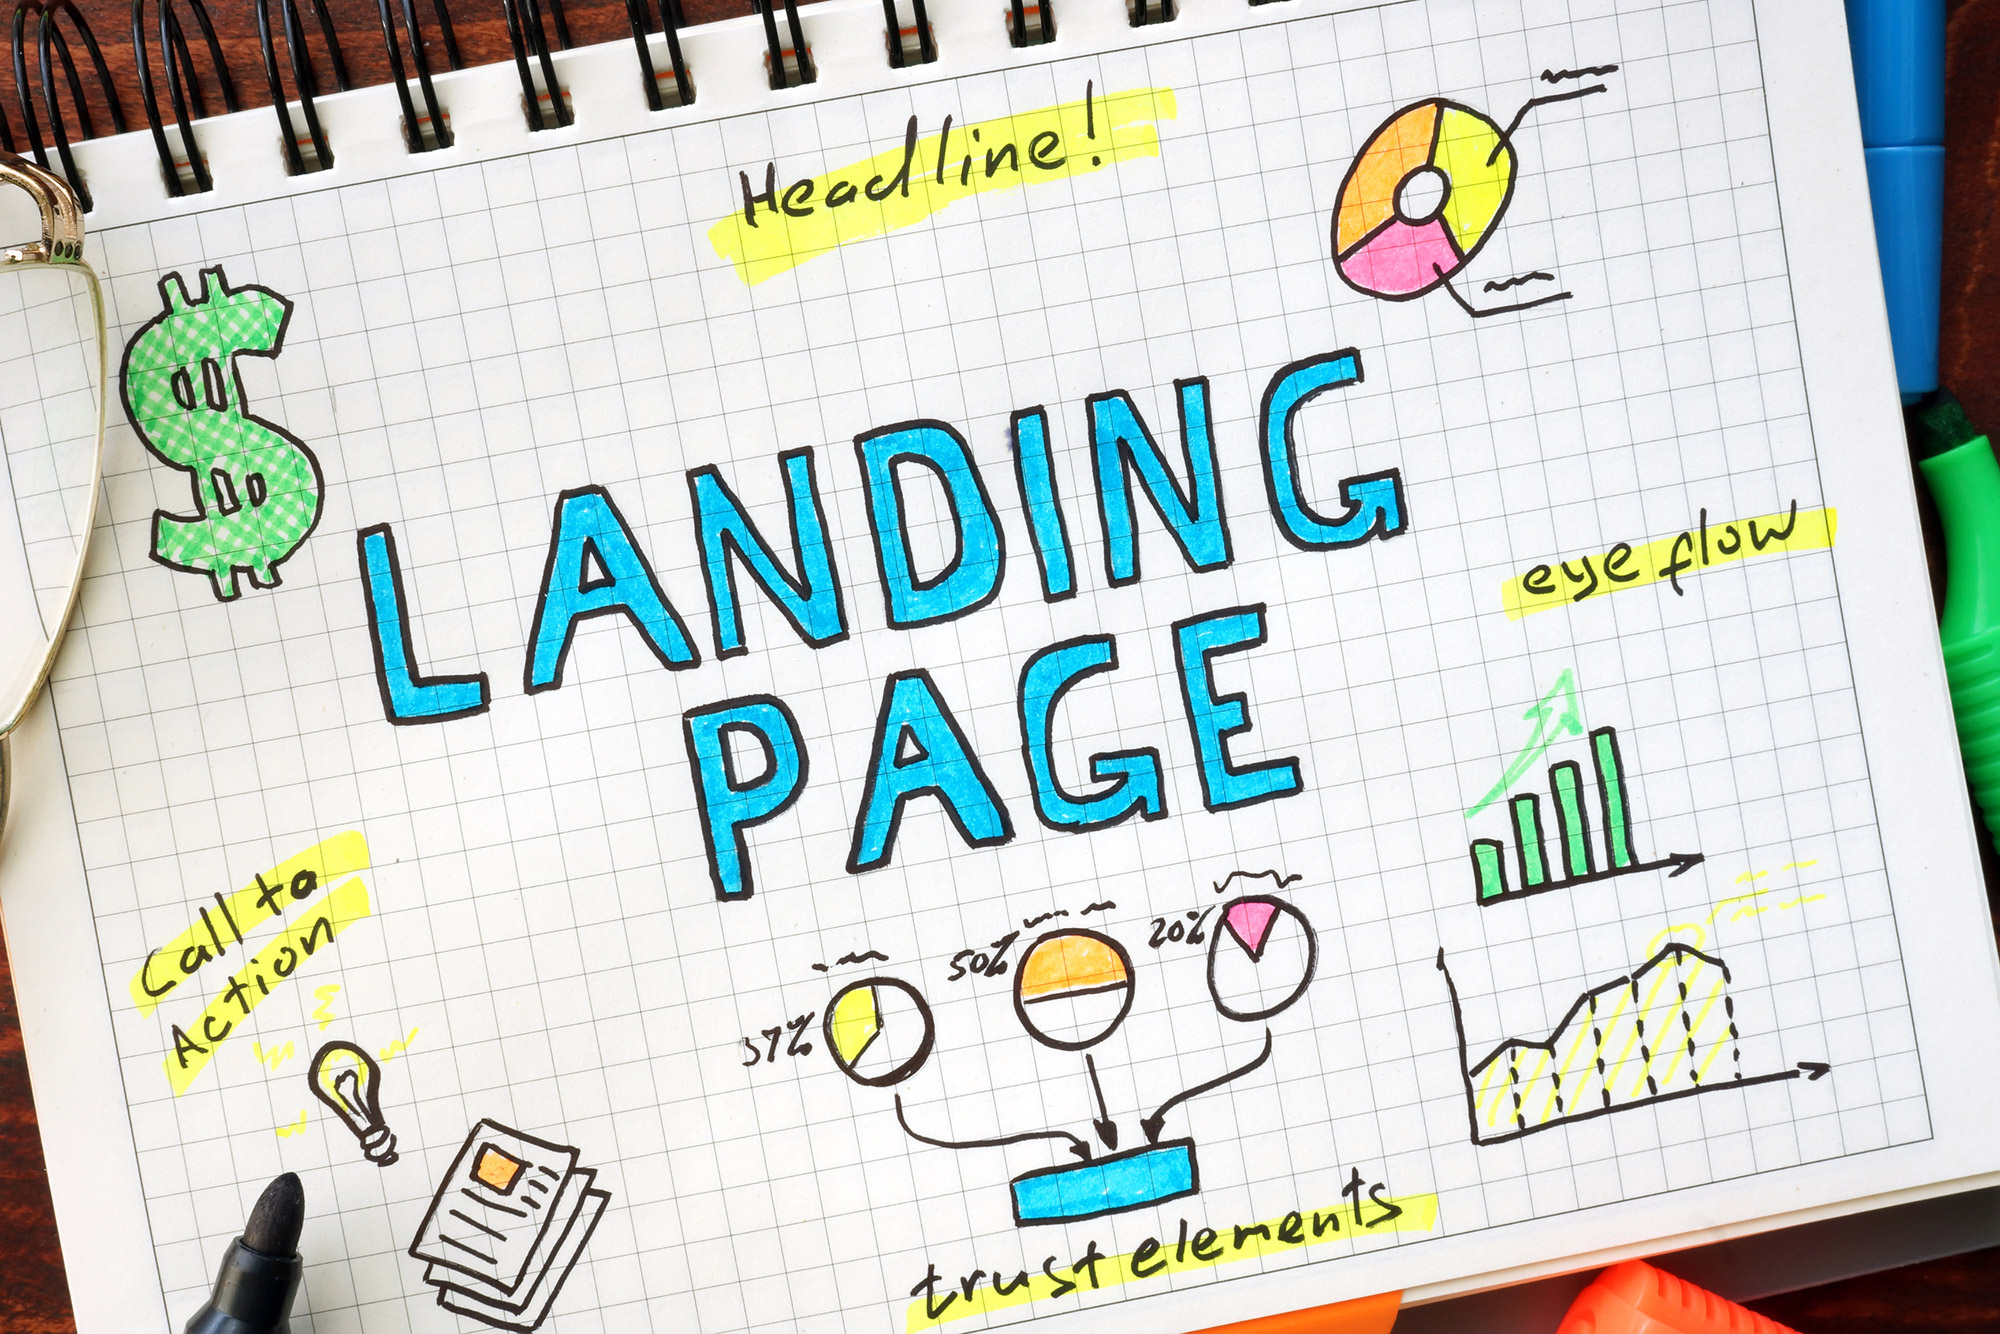 5 Essential Features of a Good Landing Page